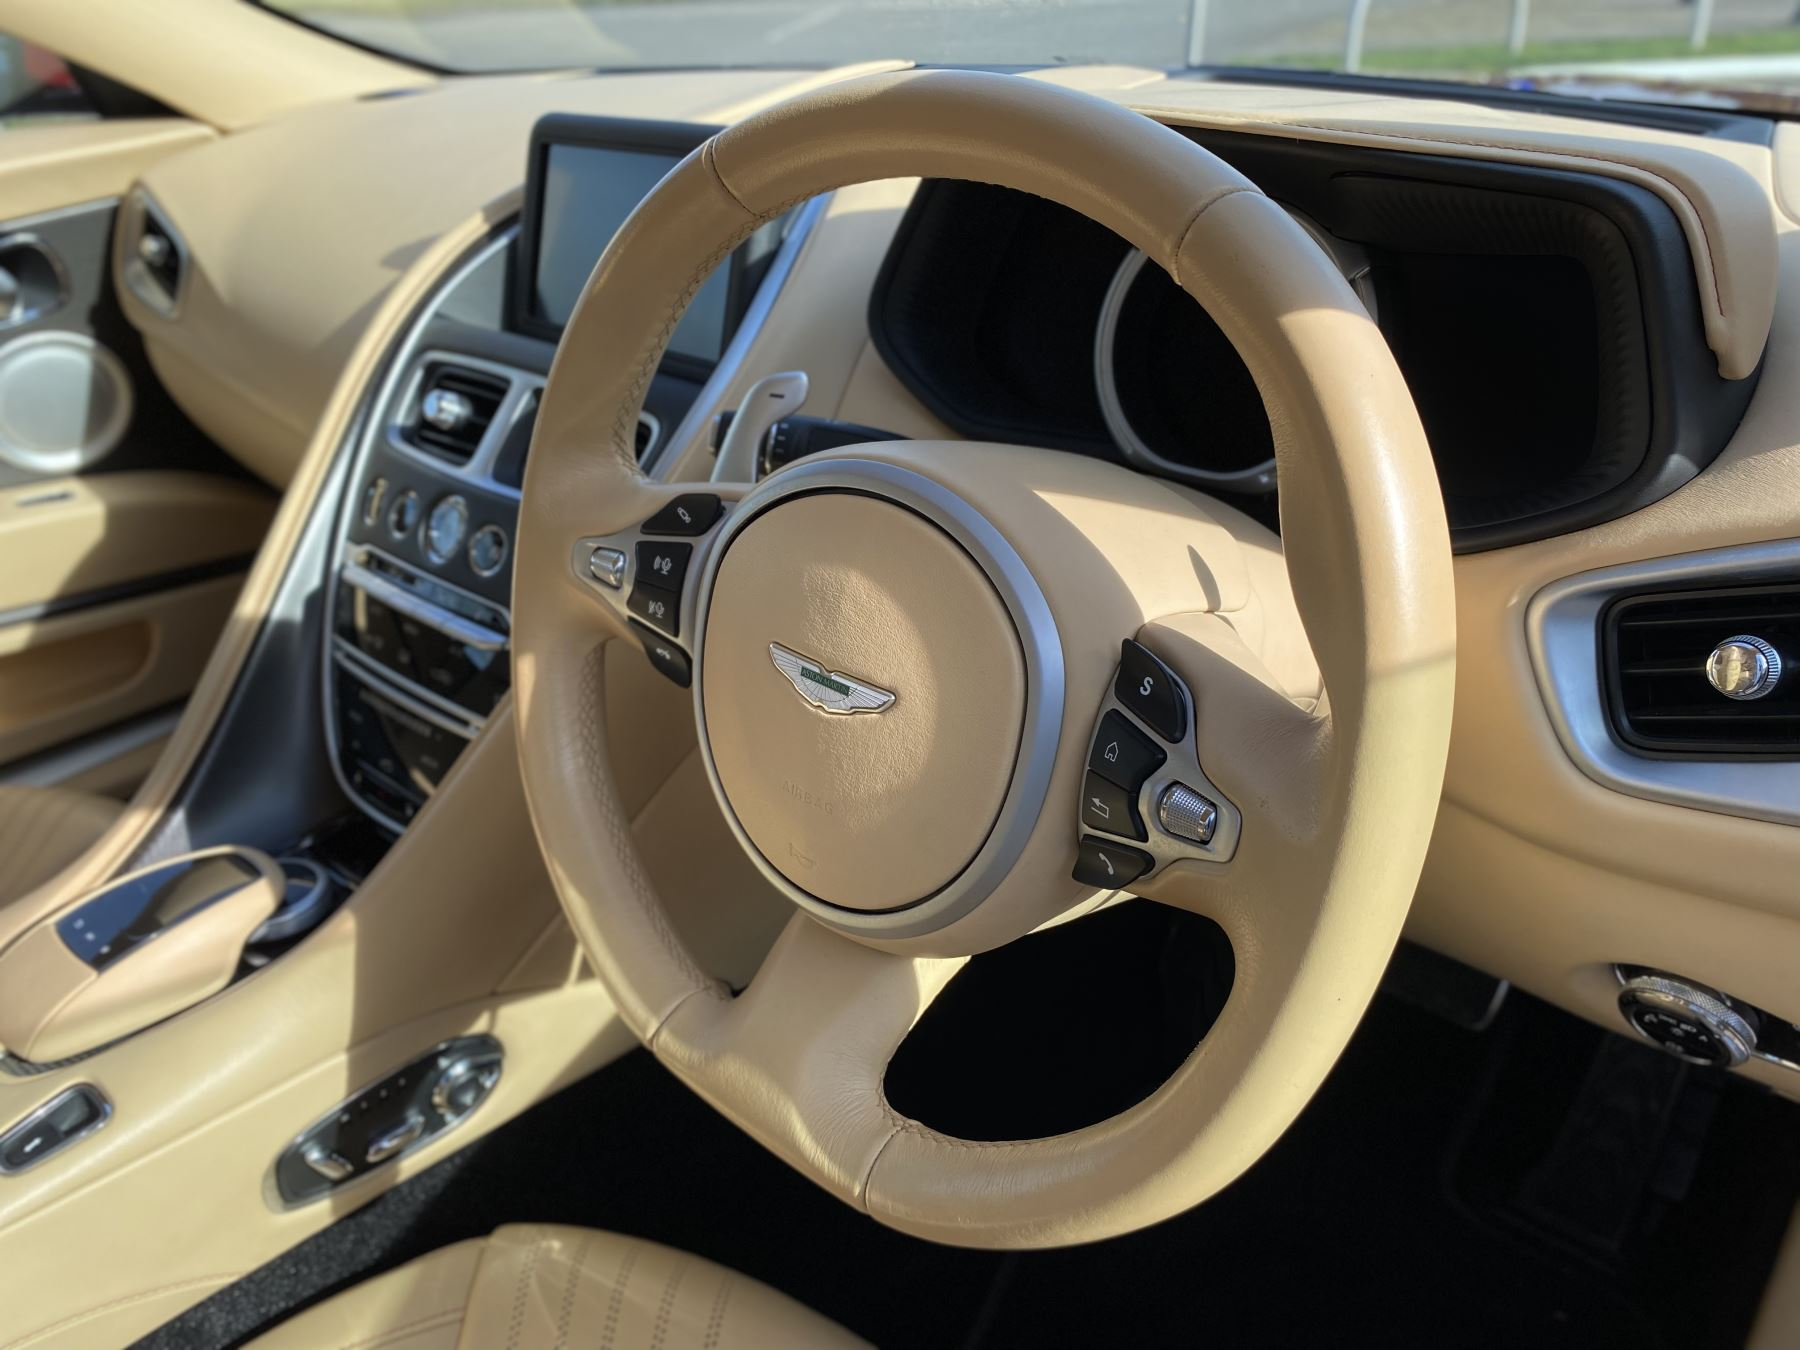 Aston Martin DB11 V12 Launch Edition Coupe. Bang & Olufsen Beosound Audio. Black brake calipers. Ventilated Seats image 25